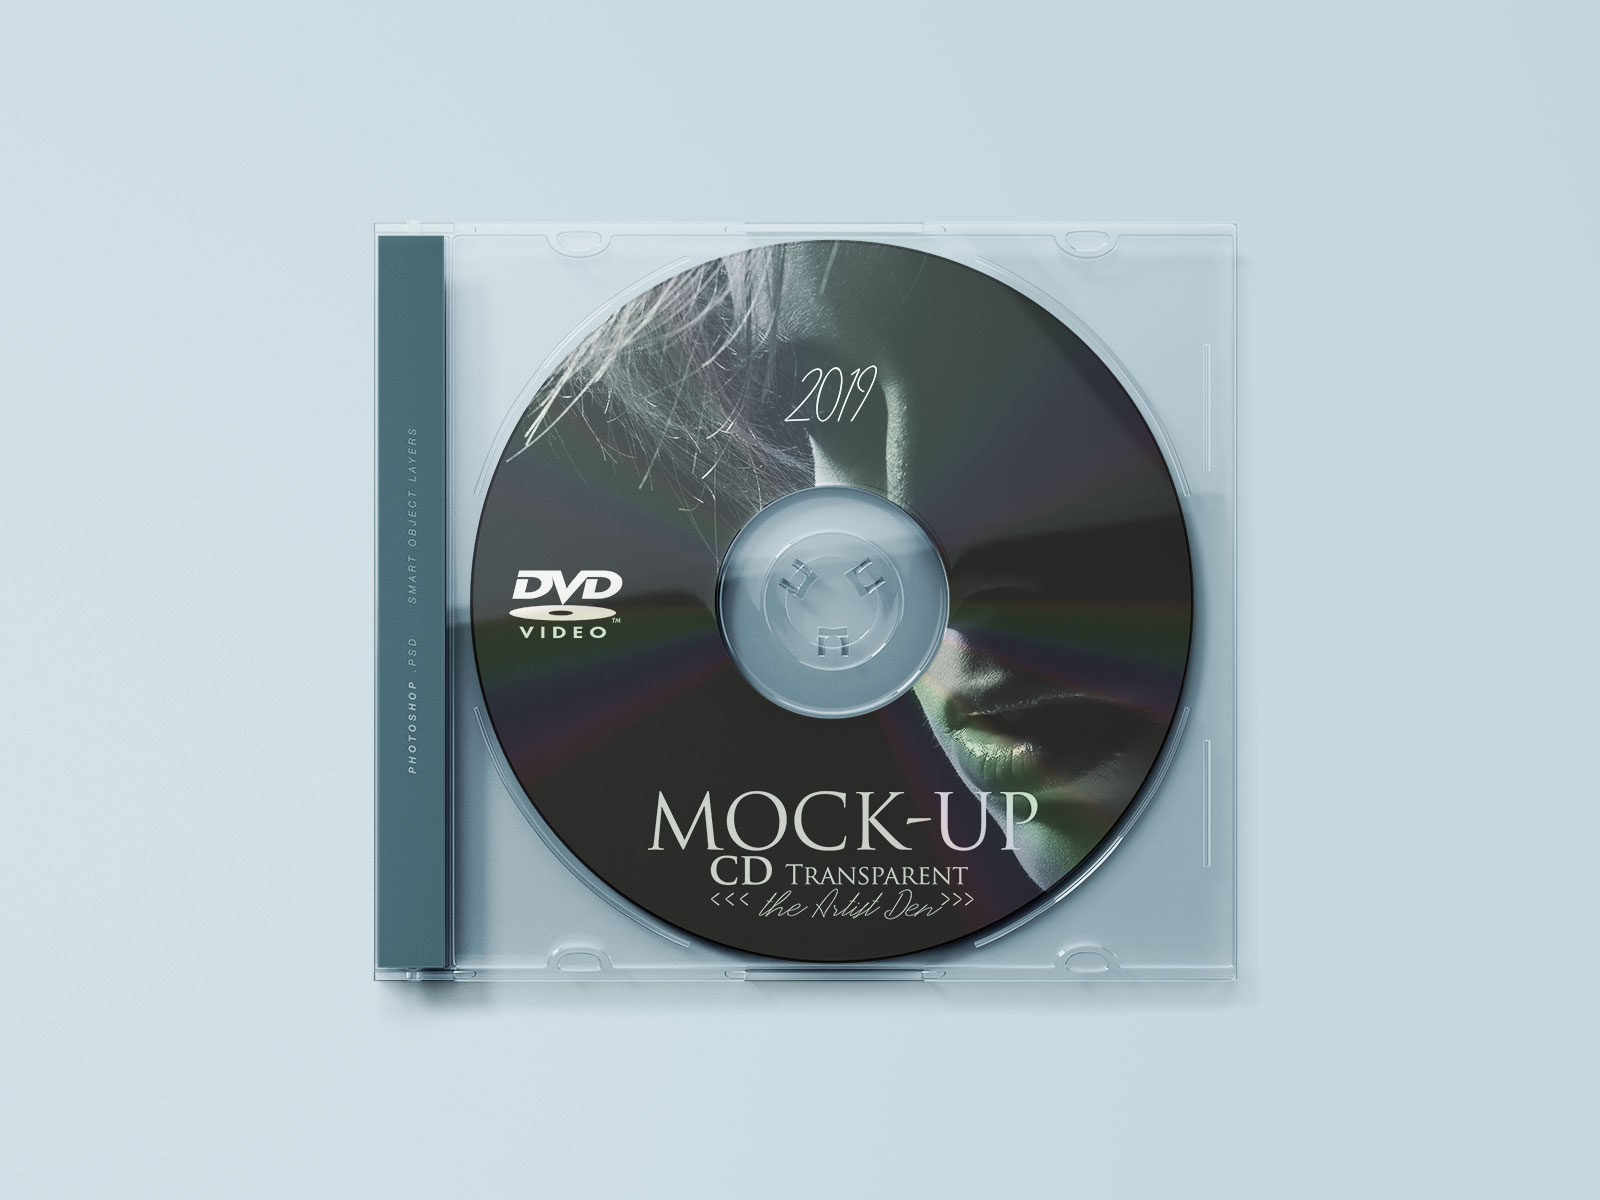 Free Cd Jewel Case Template from goodmockups.com